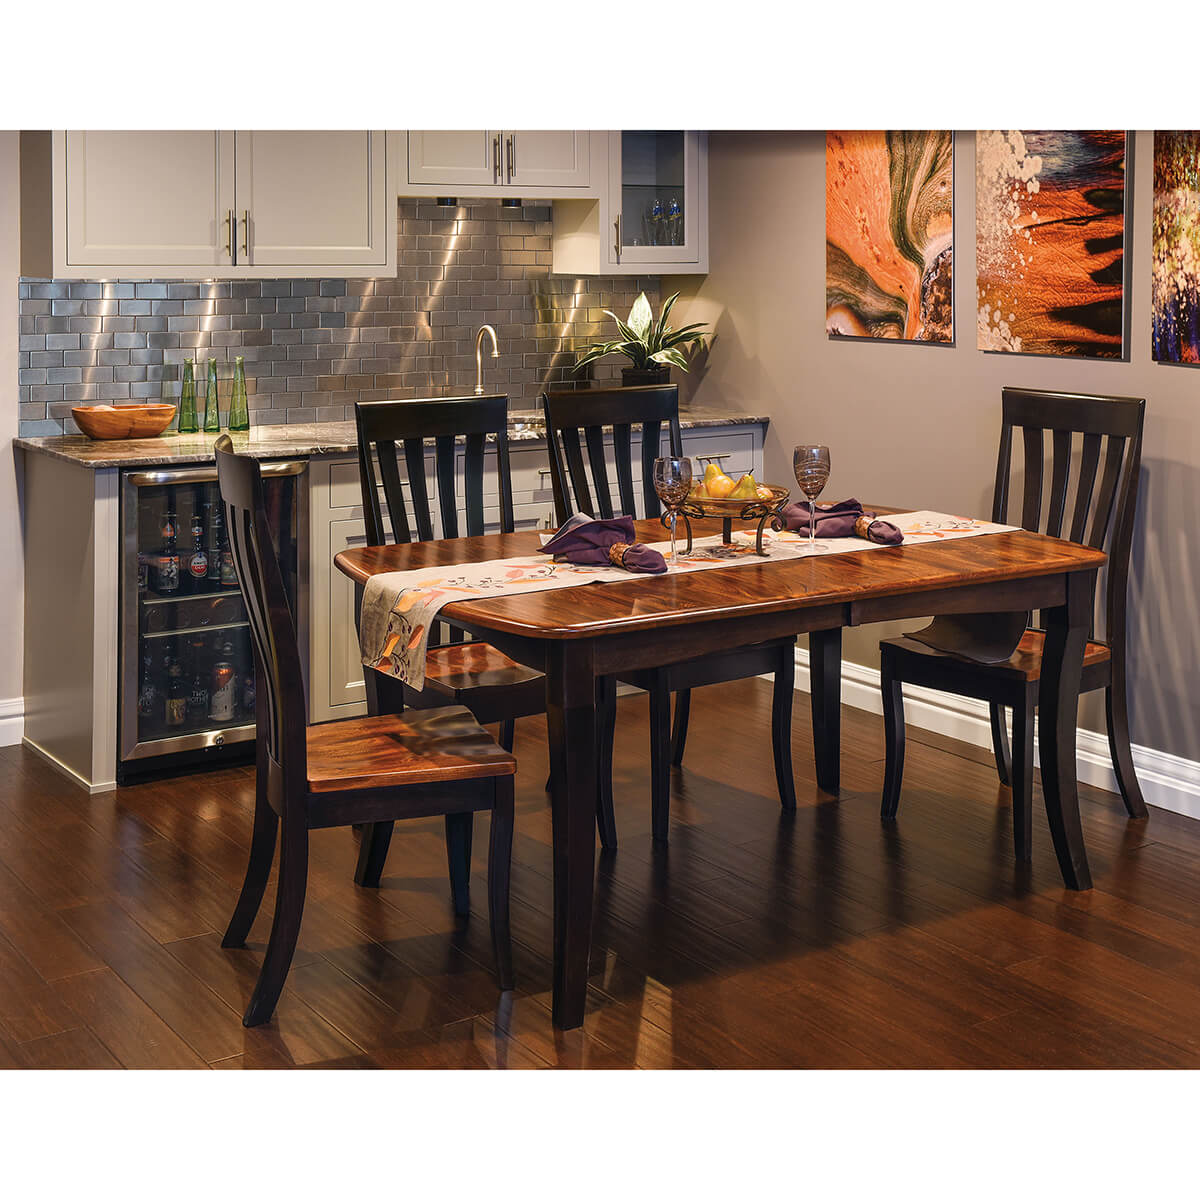 Canterbury Dining Collection with Artisan Chairs